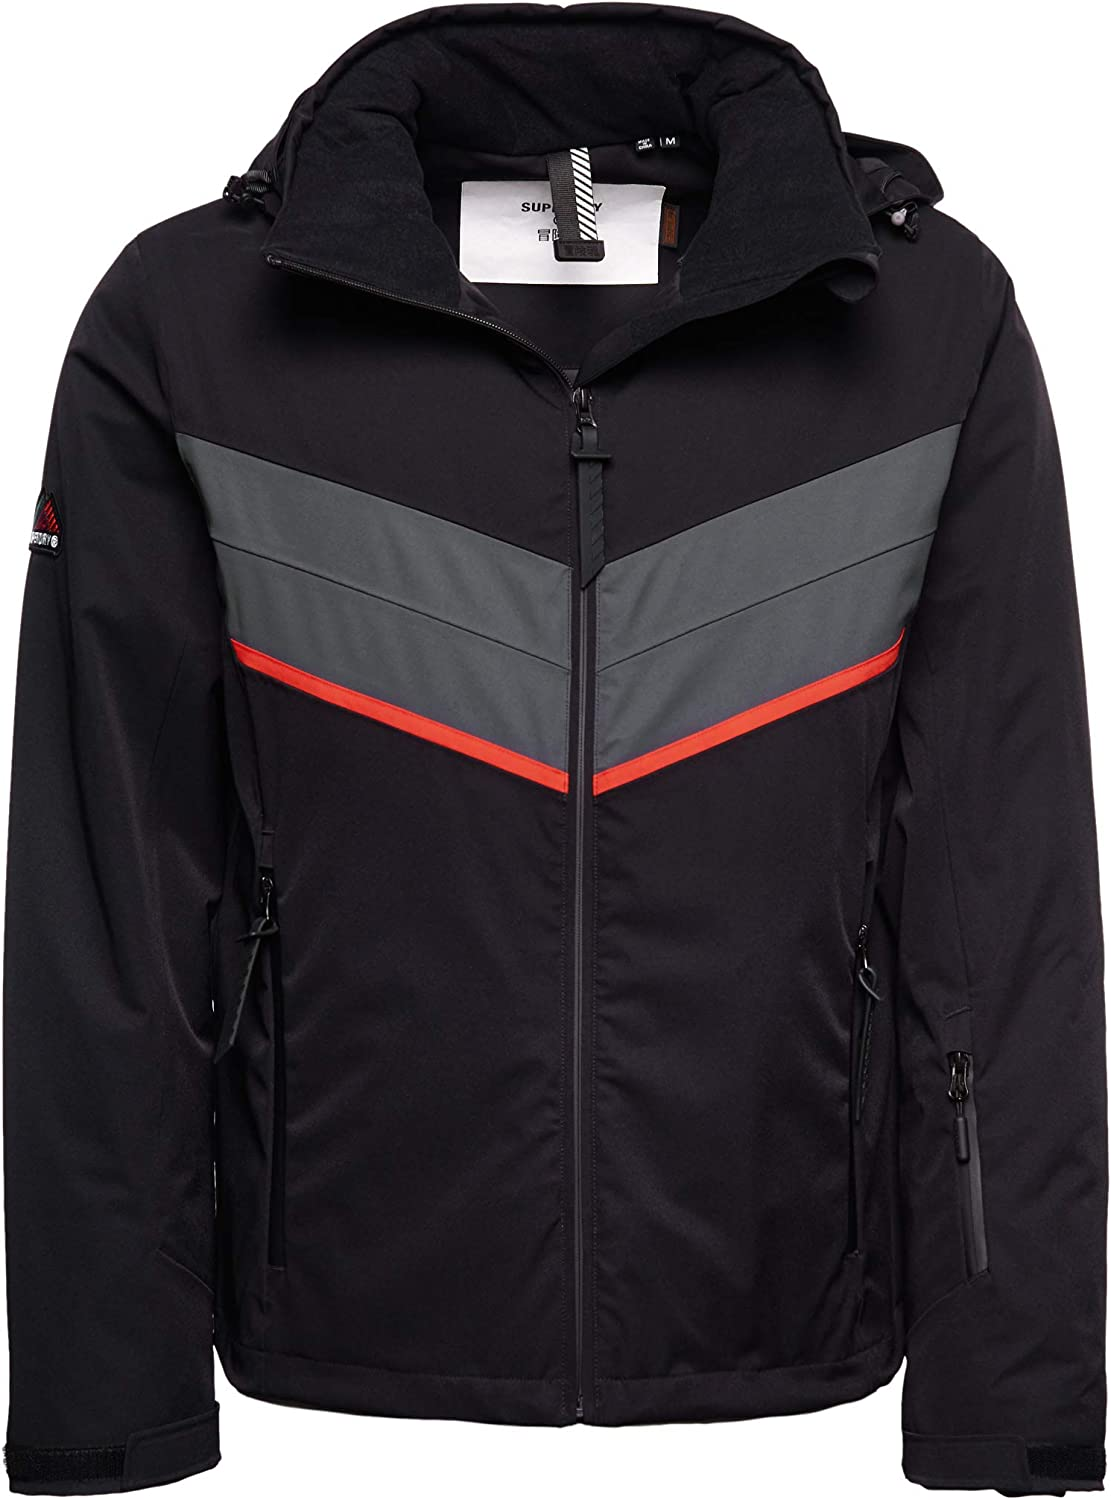 Sport Super beauty product restock quality top Racer Motion Jacket In a popularity